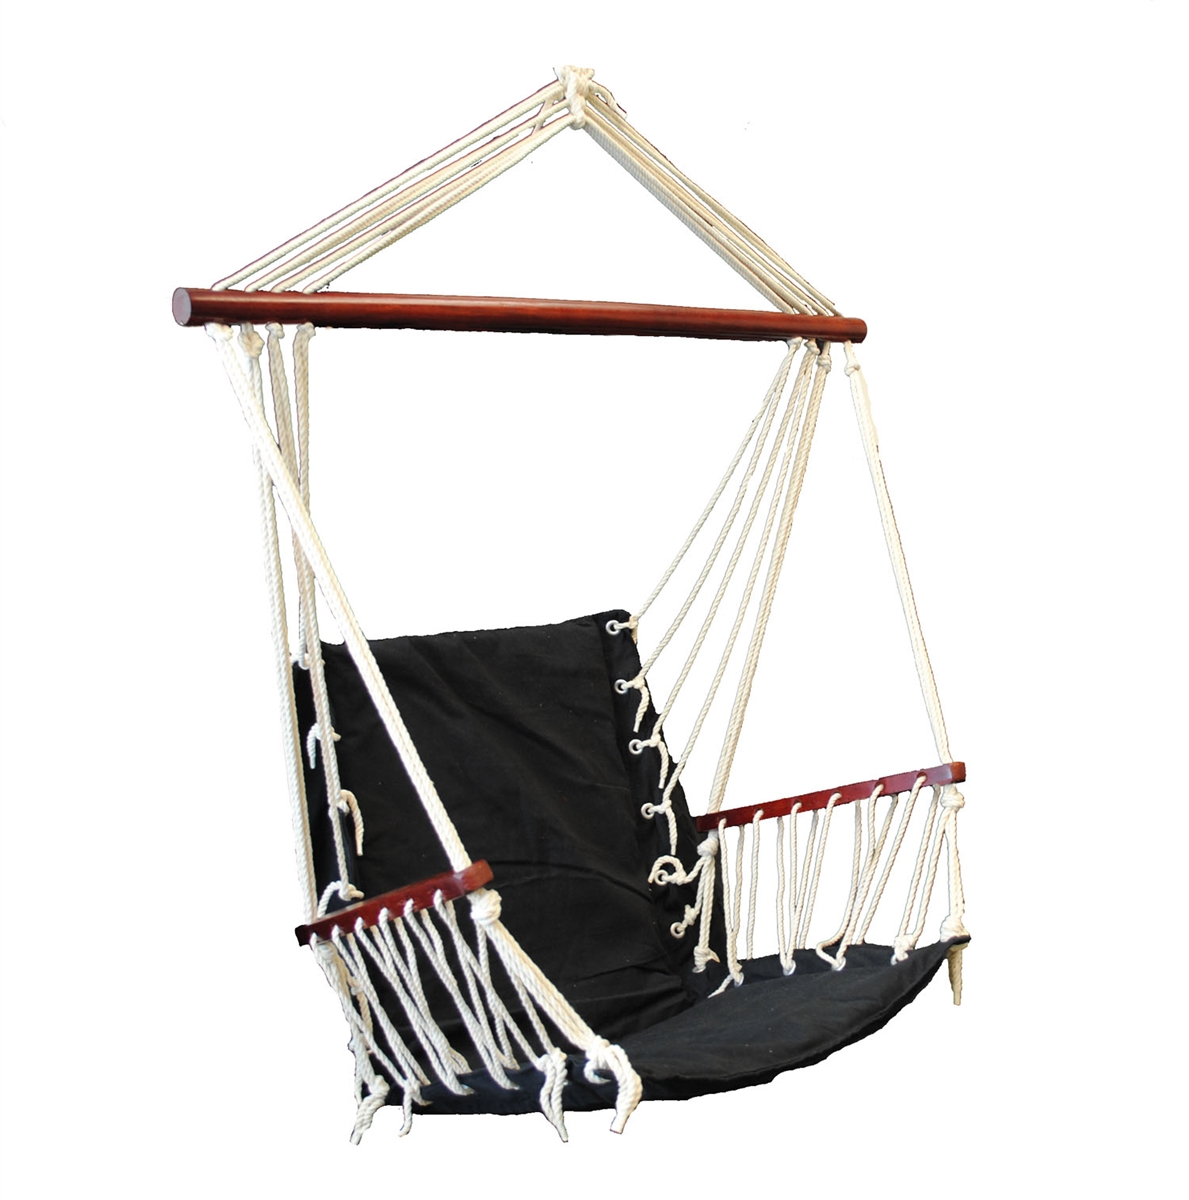 OMNI Patio Swing Seat Hanging Hammock Cotton Rope Chair With Cushion Seat - Black